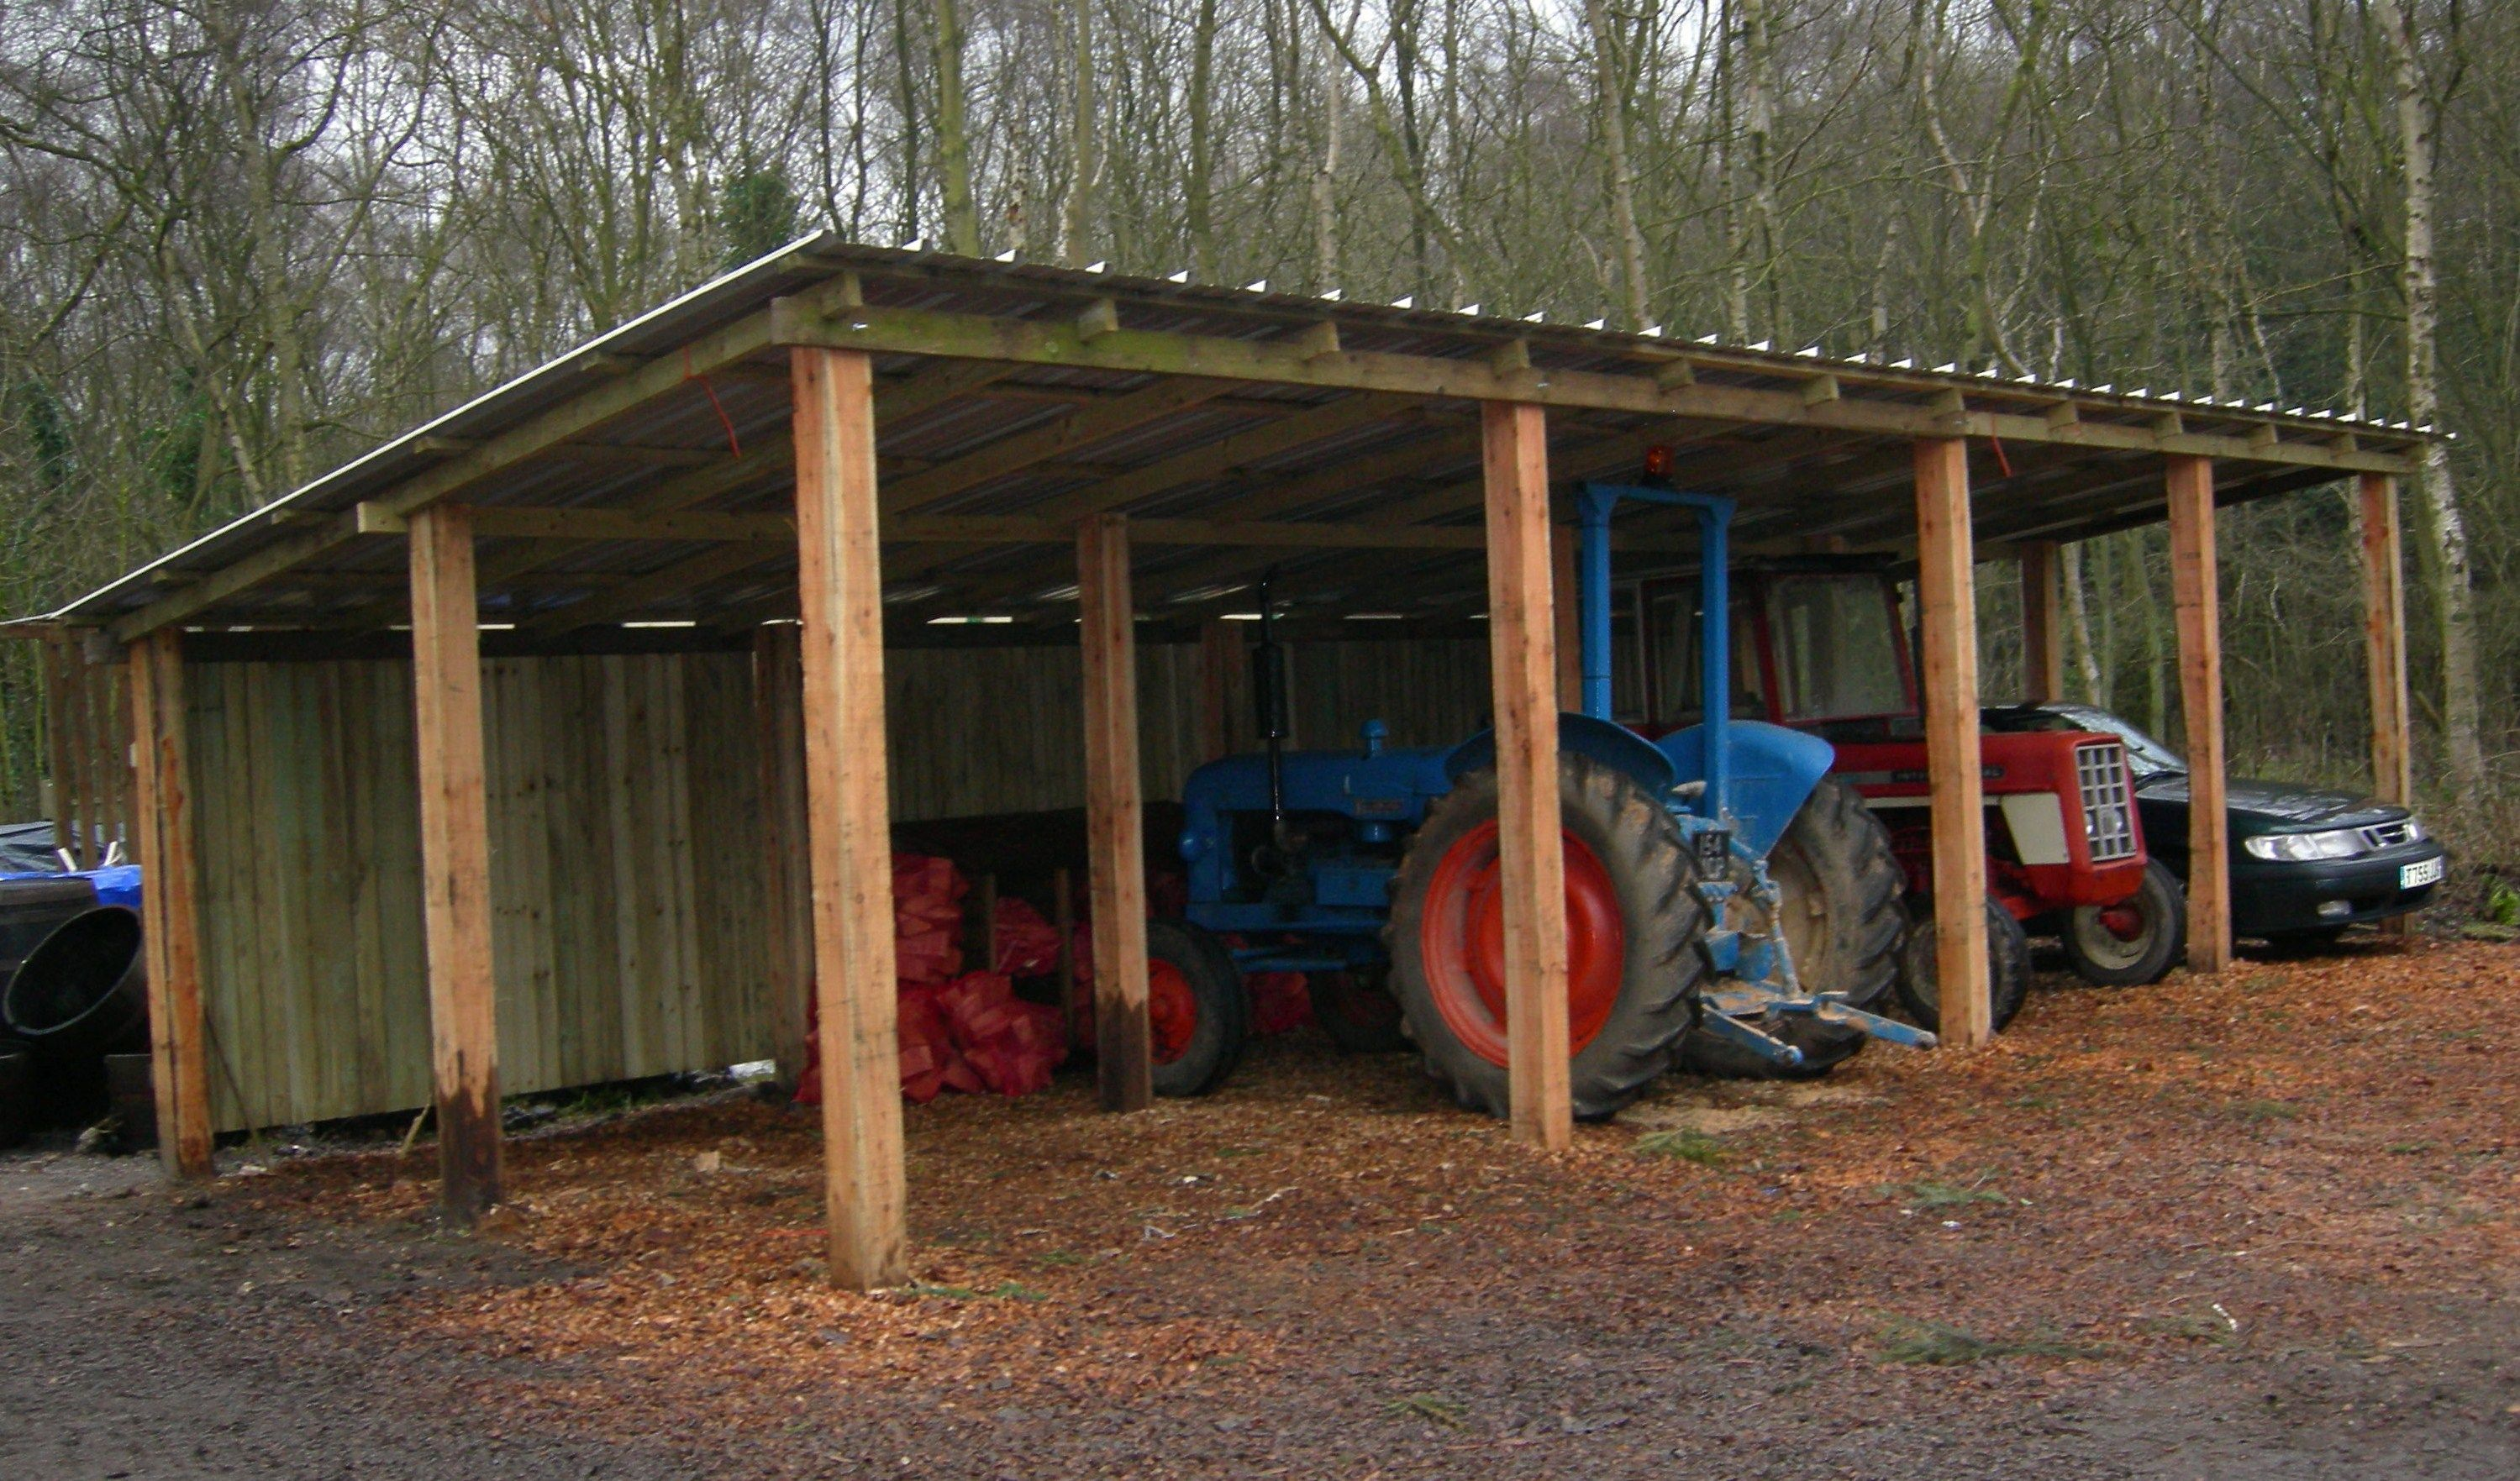 How To Build A Barn Shed Basics Of Building Your Own Shed Shed Design Wood Shed Plans Diy Shed Plans